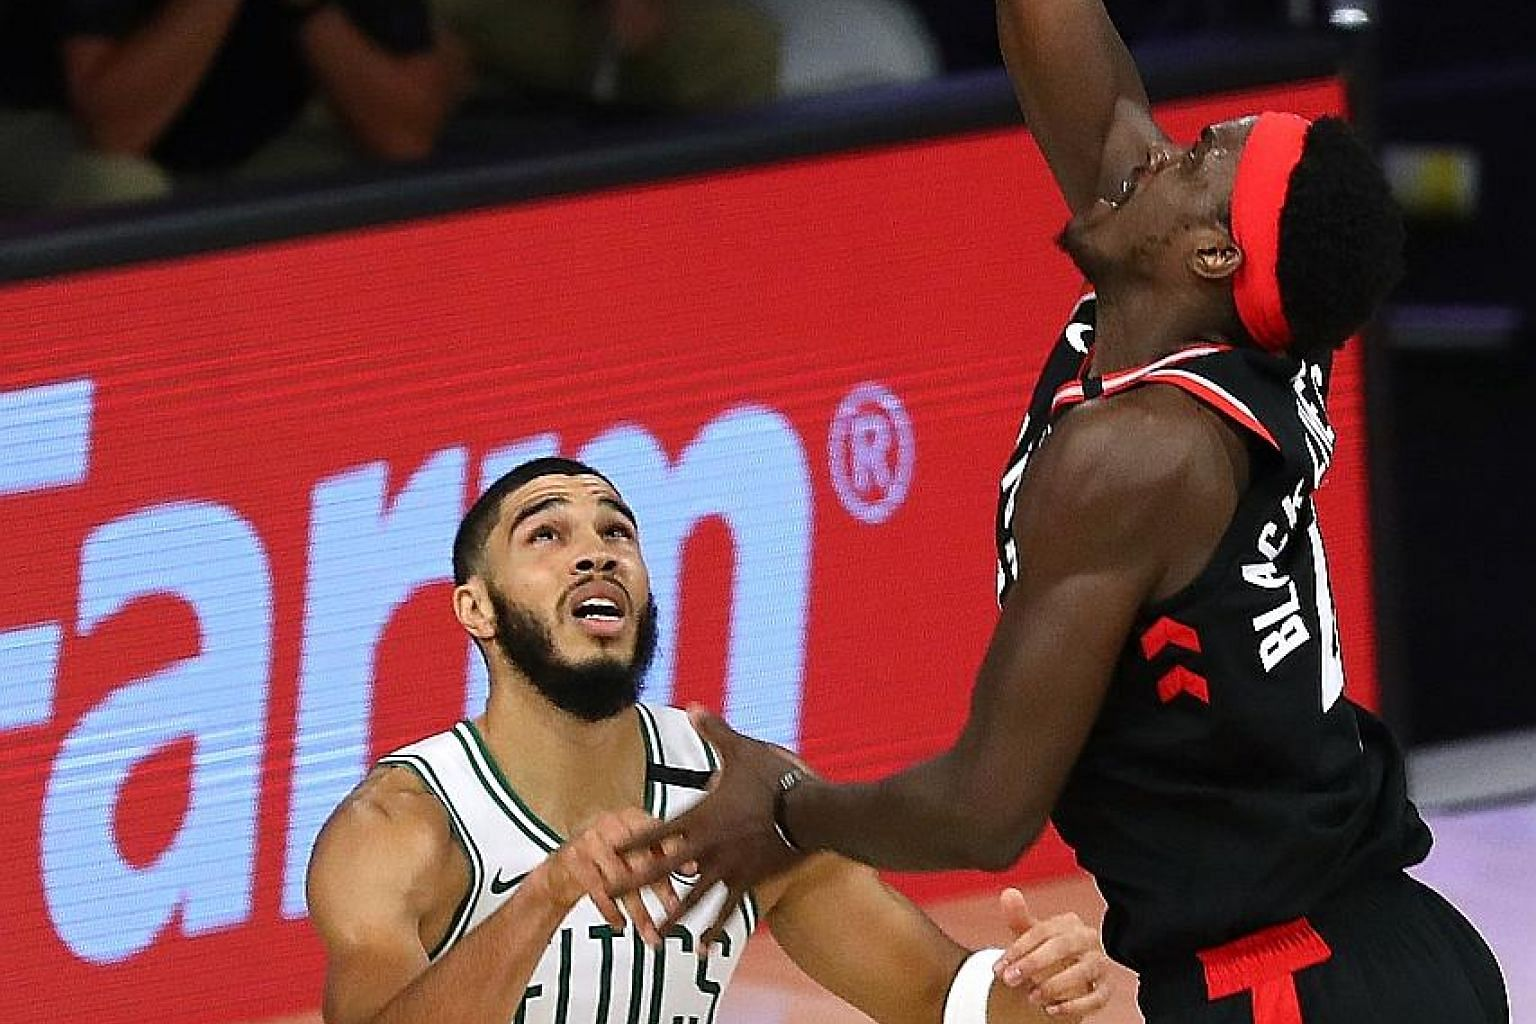 Toronto's Pascal Siakam, finishing with 23 points, making a basket over Boston forward Jayson Tatum during Game 4 of their Eastern Conference semi-final series. The Raptors won 100-93 to level the best-of-seven series. PHOTO: REUTERS